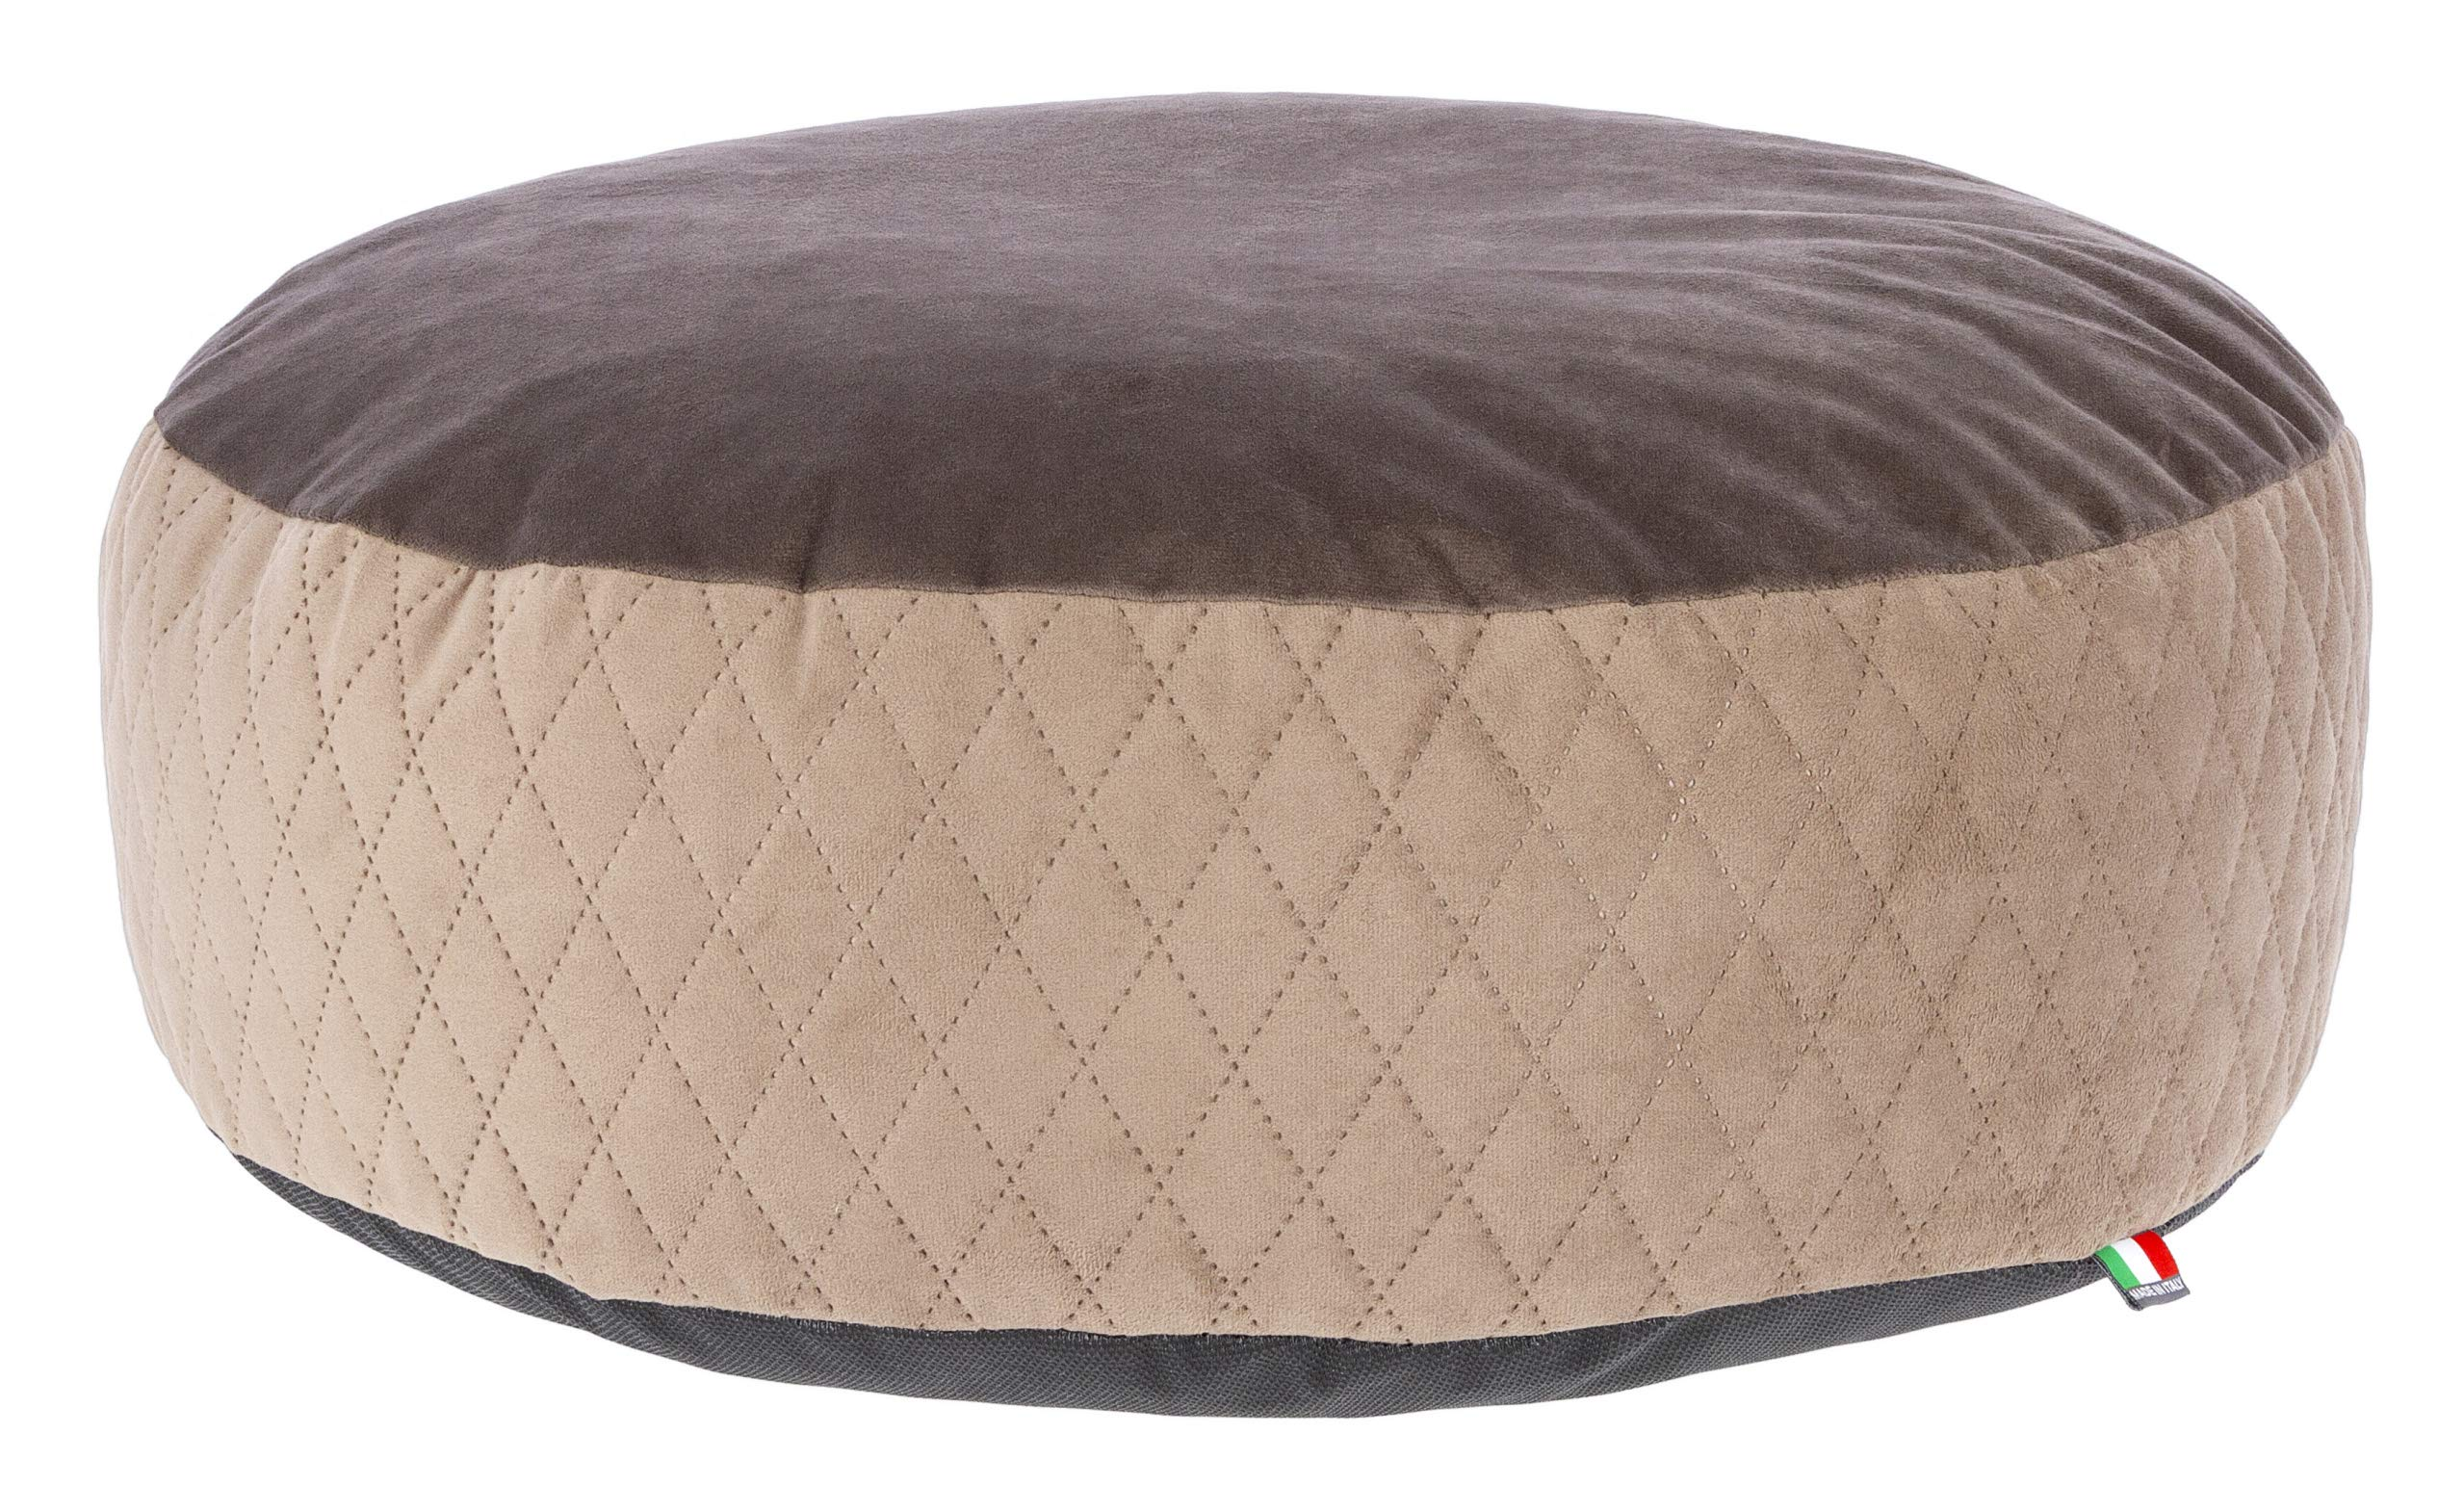 MaxiPet 80392 Dog Cushion Diameter 60 x 18 cm Taupe/Brown by MaxiPet